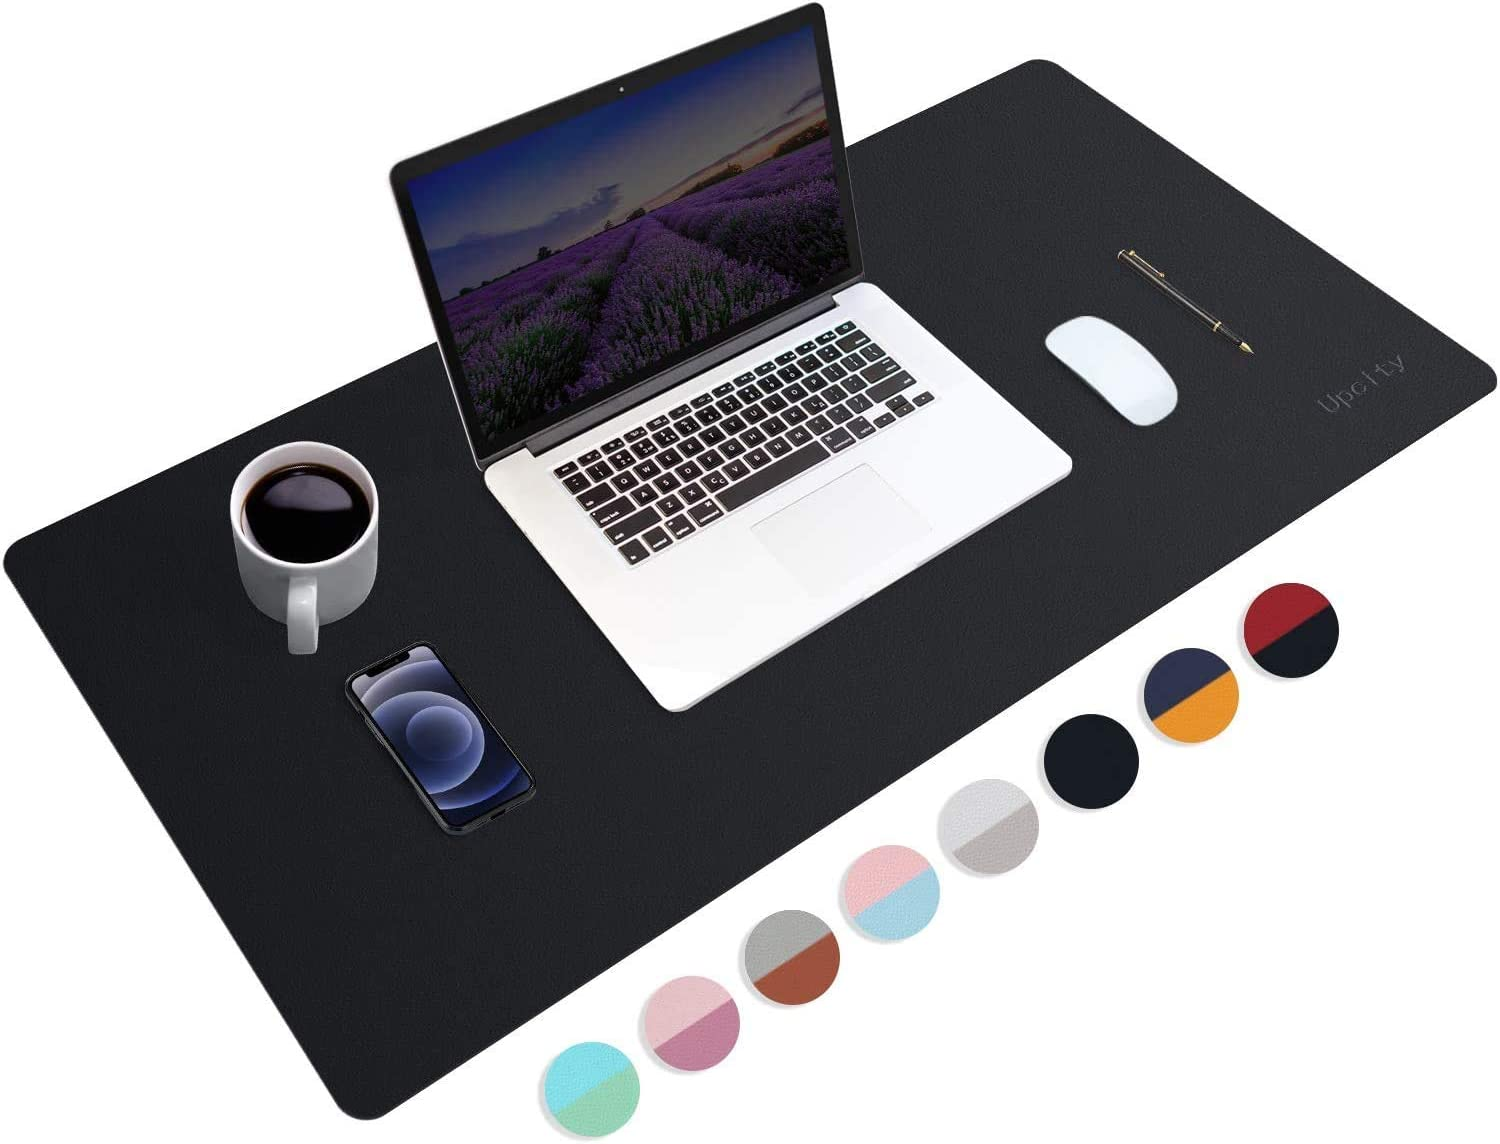 Upcity Desk Mat, Leather Mousepad - Desk Pad for Keyboard and Mouse, Desk Pad Blotter Protector, Waterproof PU Leather Laptop Desk Mat for Office/Home(Black, 2313